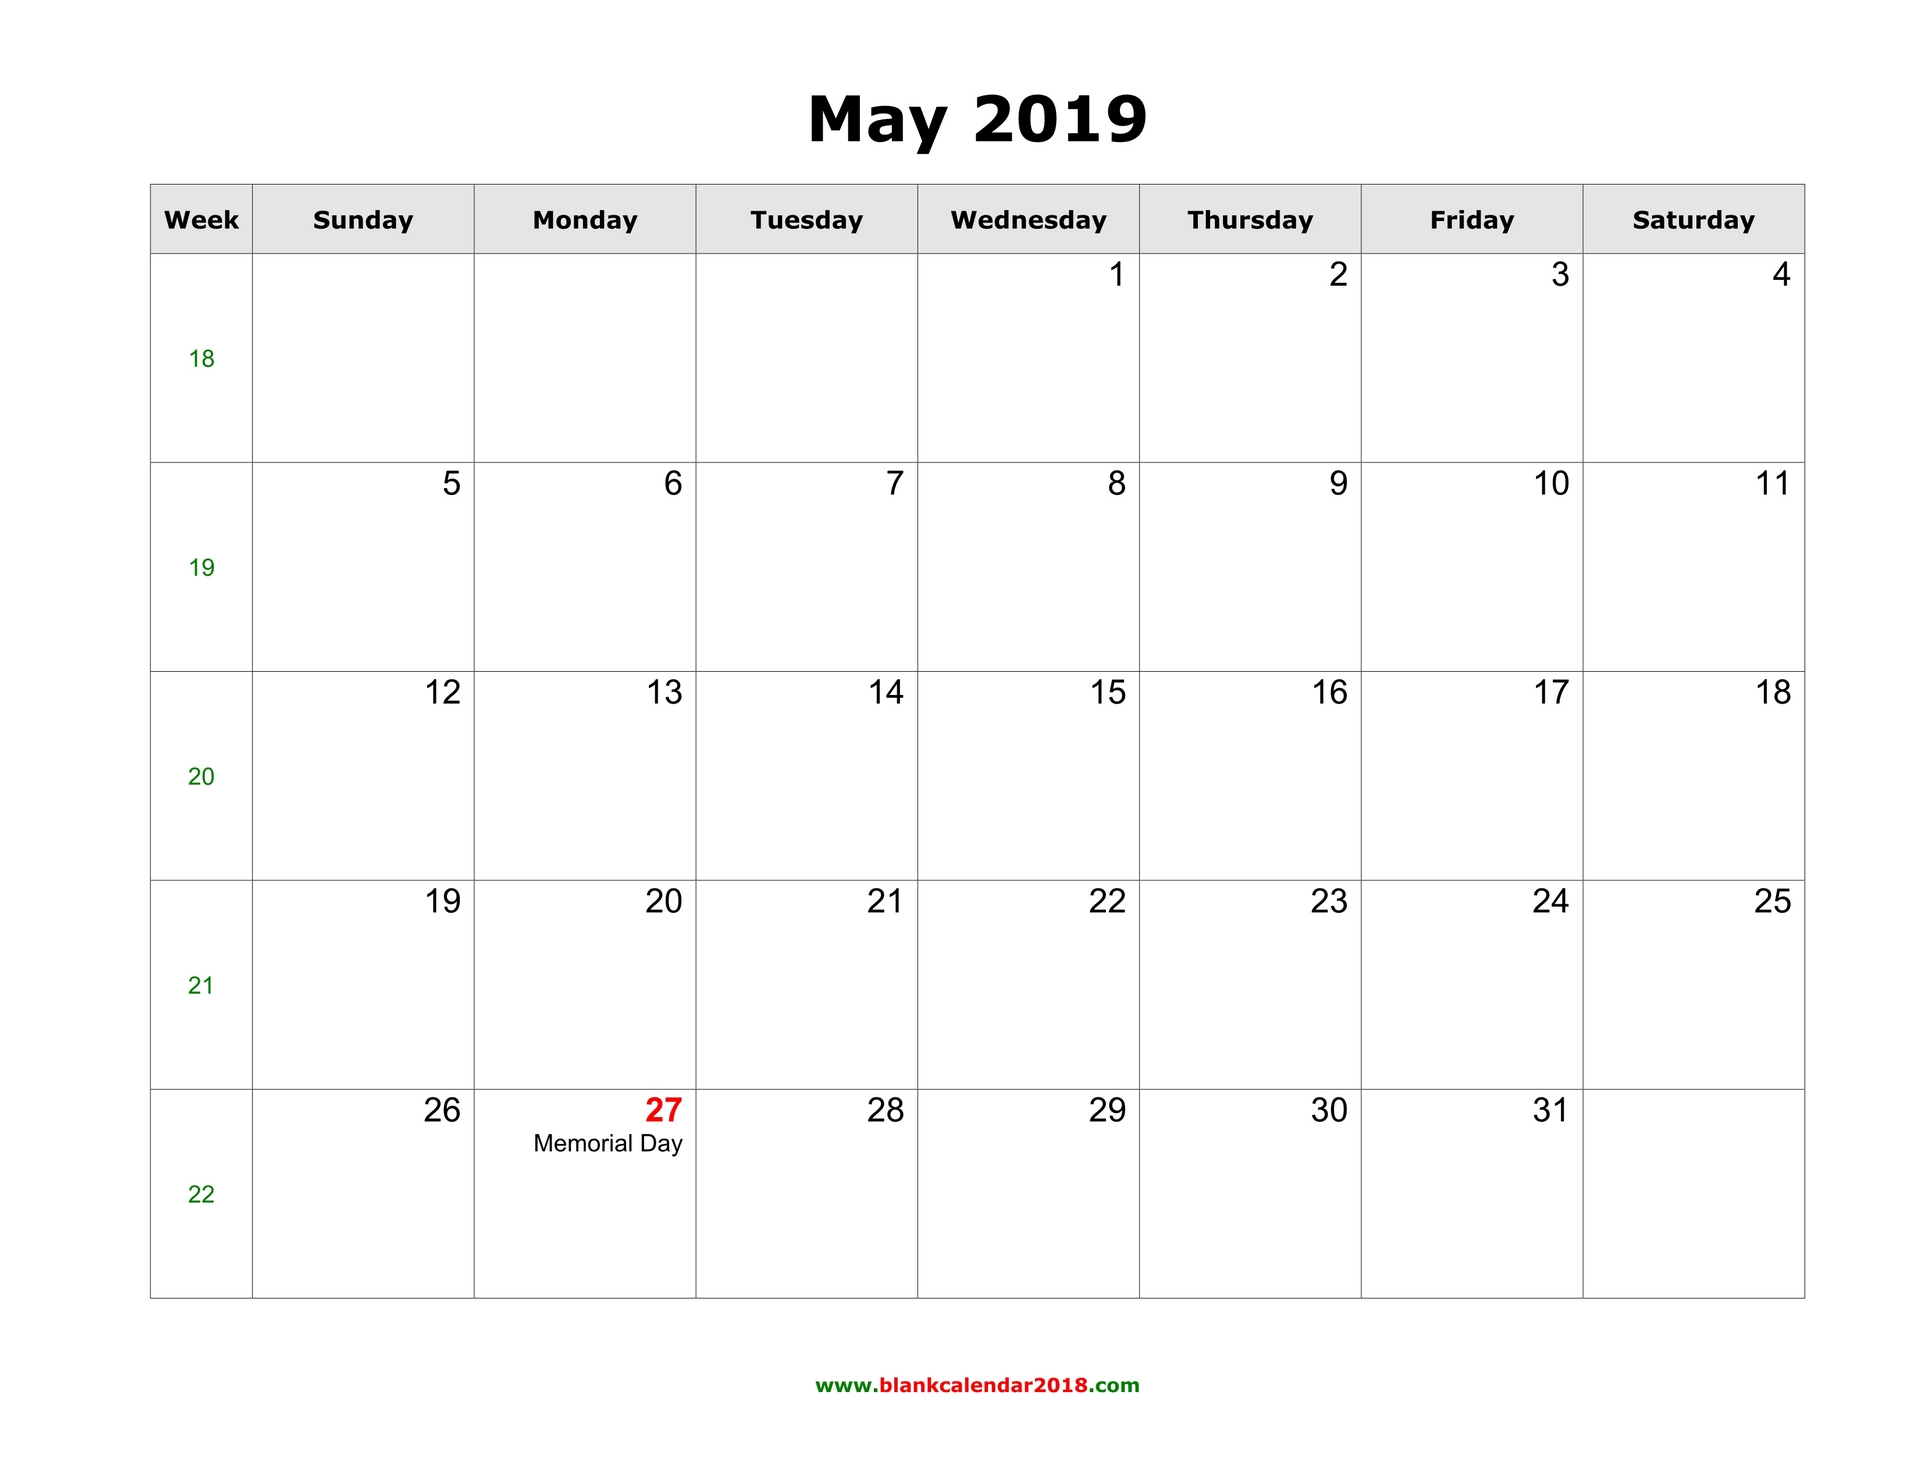 May Printable Calendar.Blank Calendar For May 2019